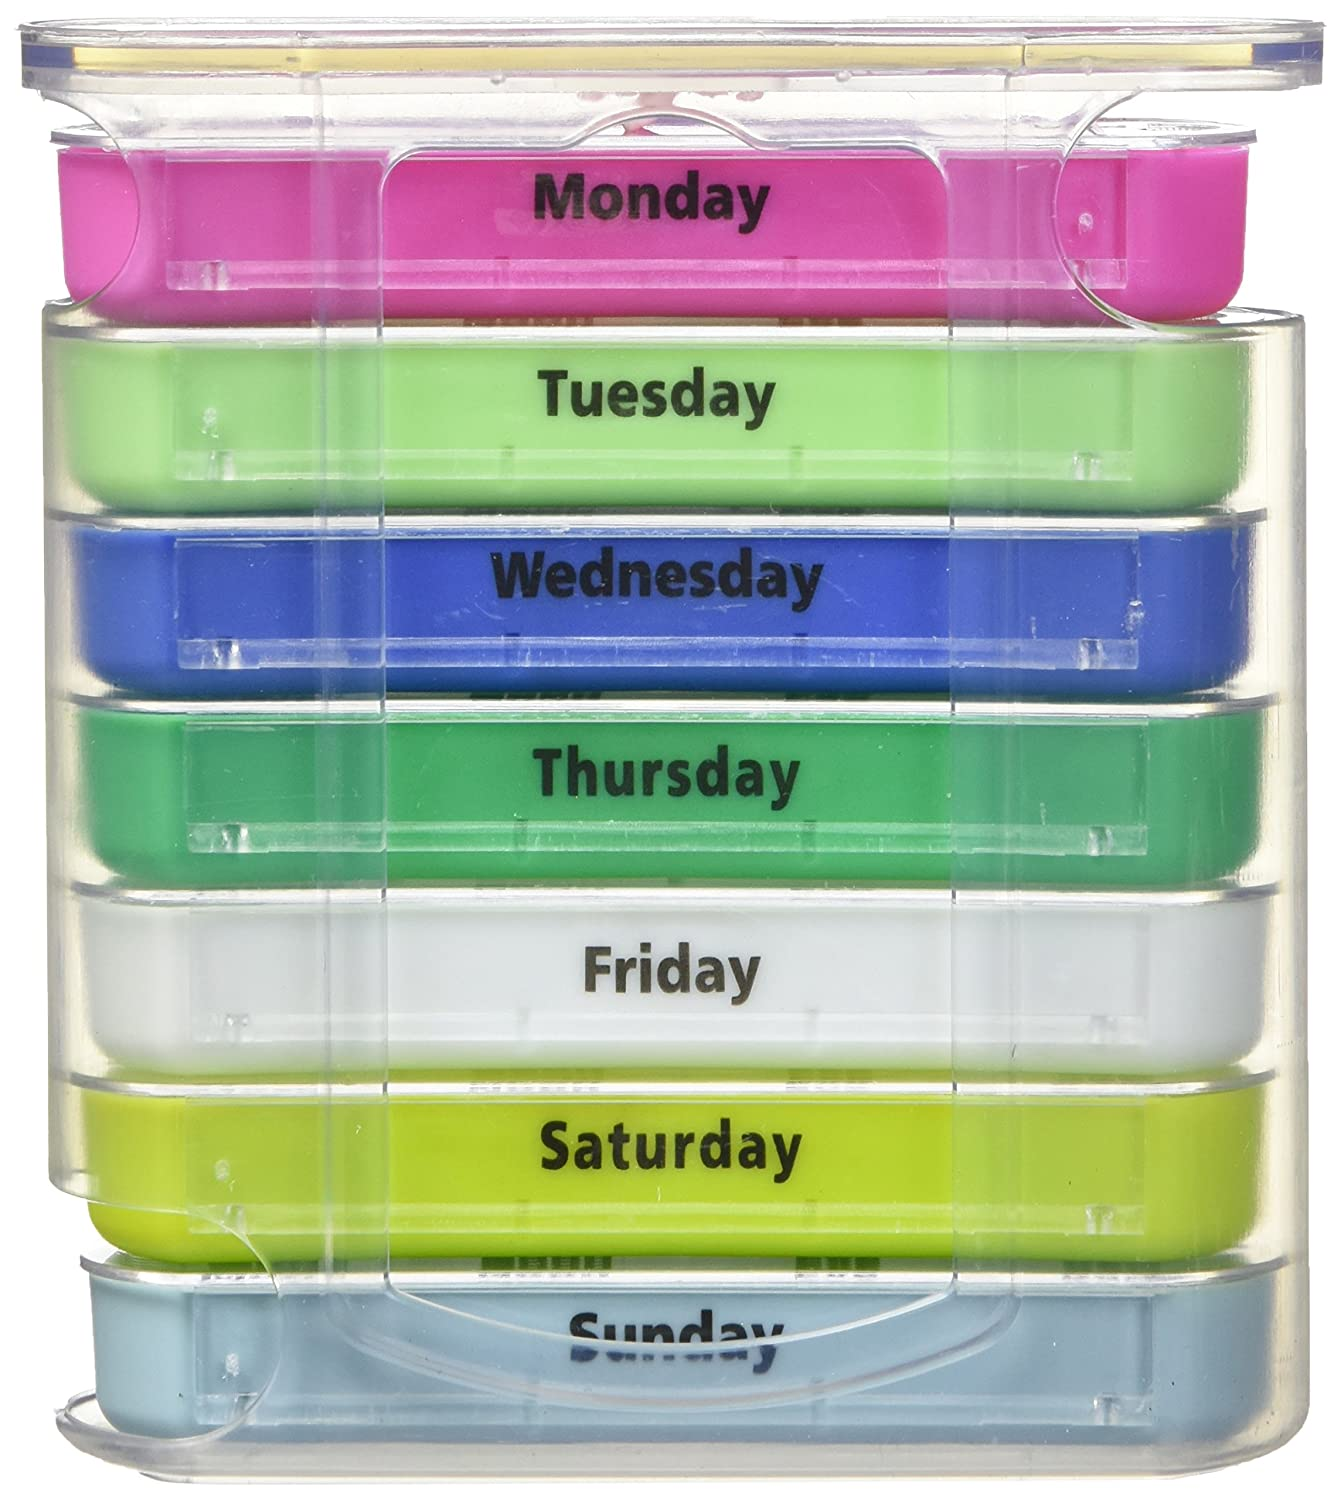 Amazon.com: Pill Organizer Box Weekly Case with Pill Splitter Cutter ...